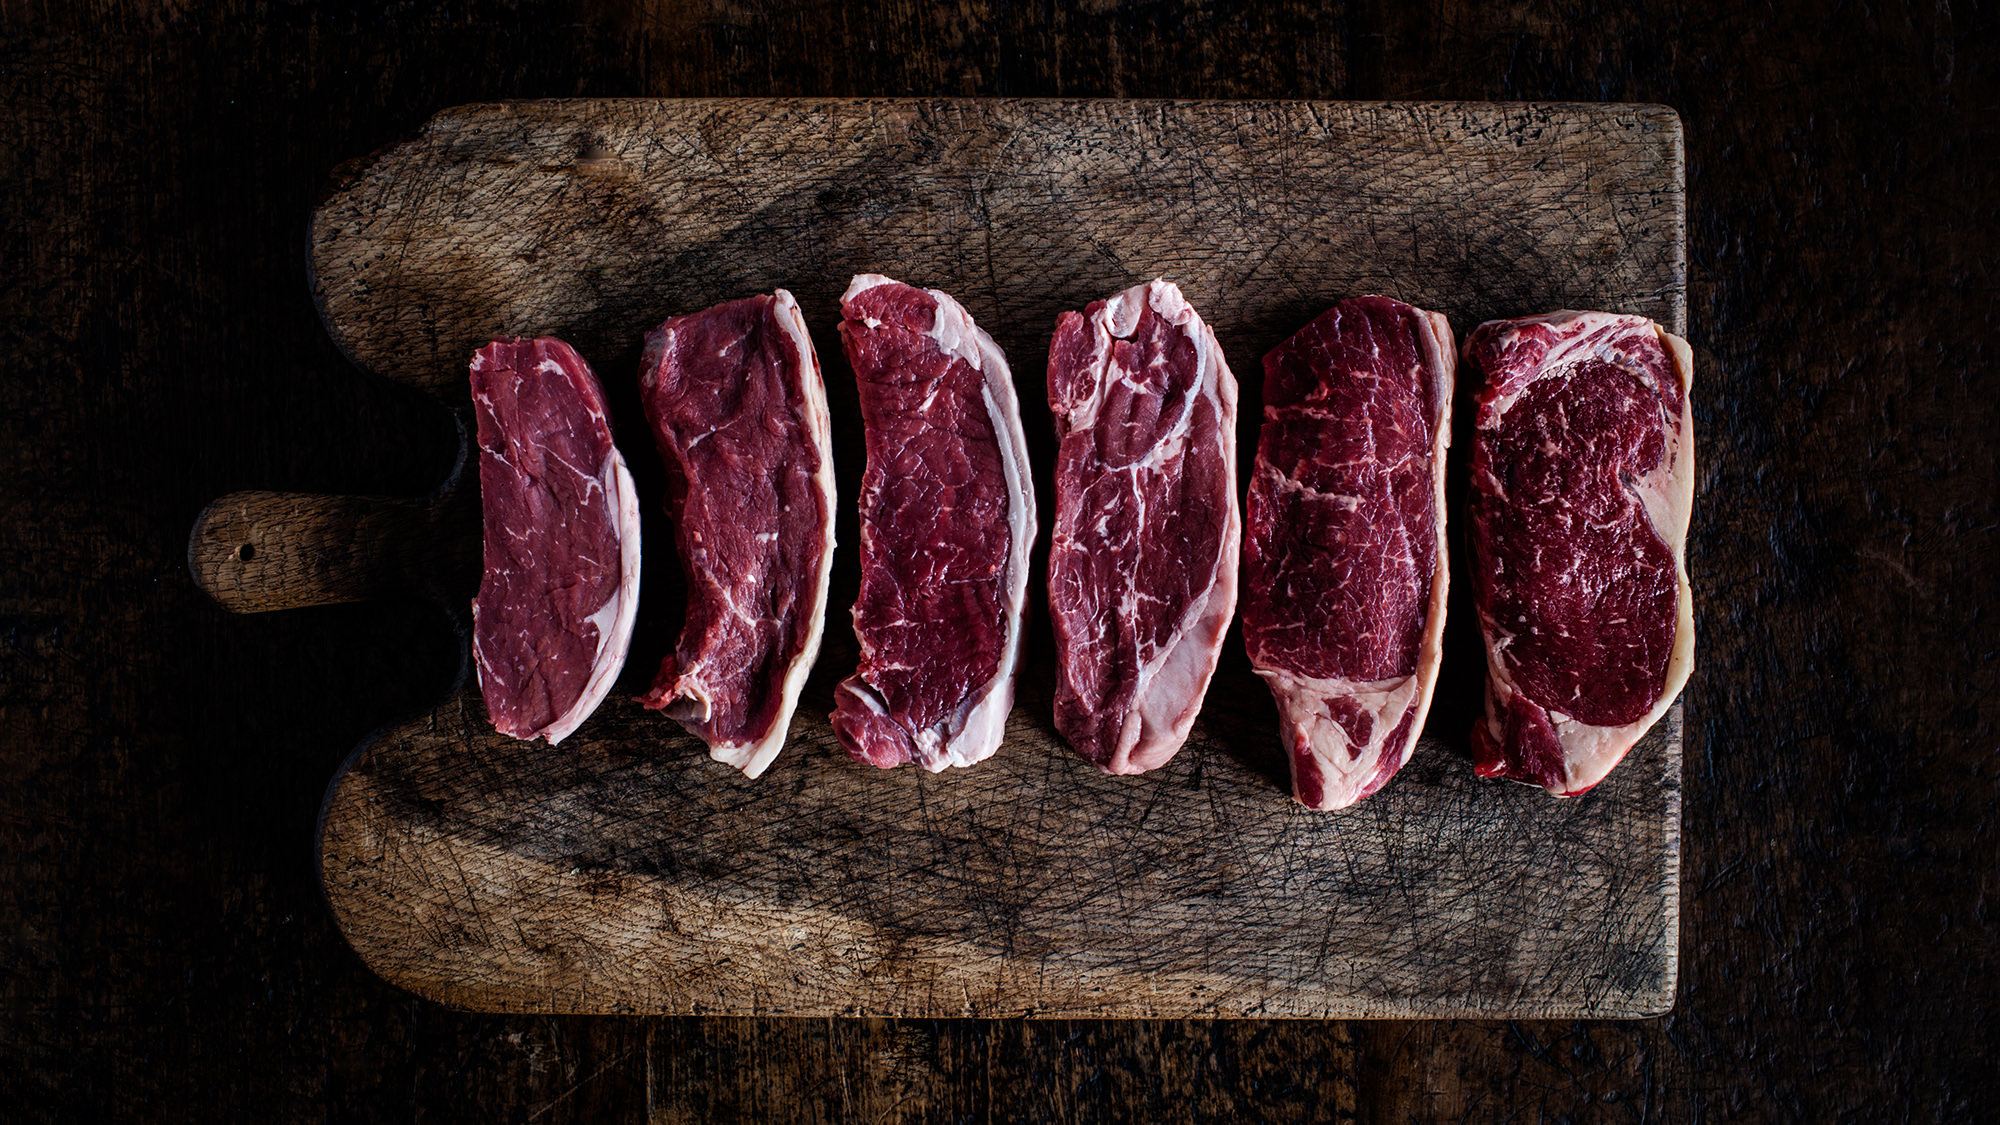 A selection of beef from premium Australian brands passionate about sustainability.